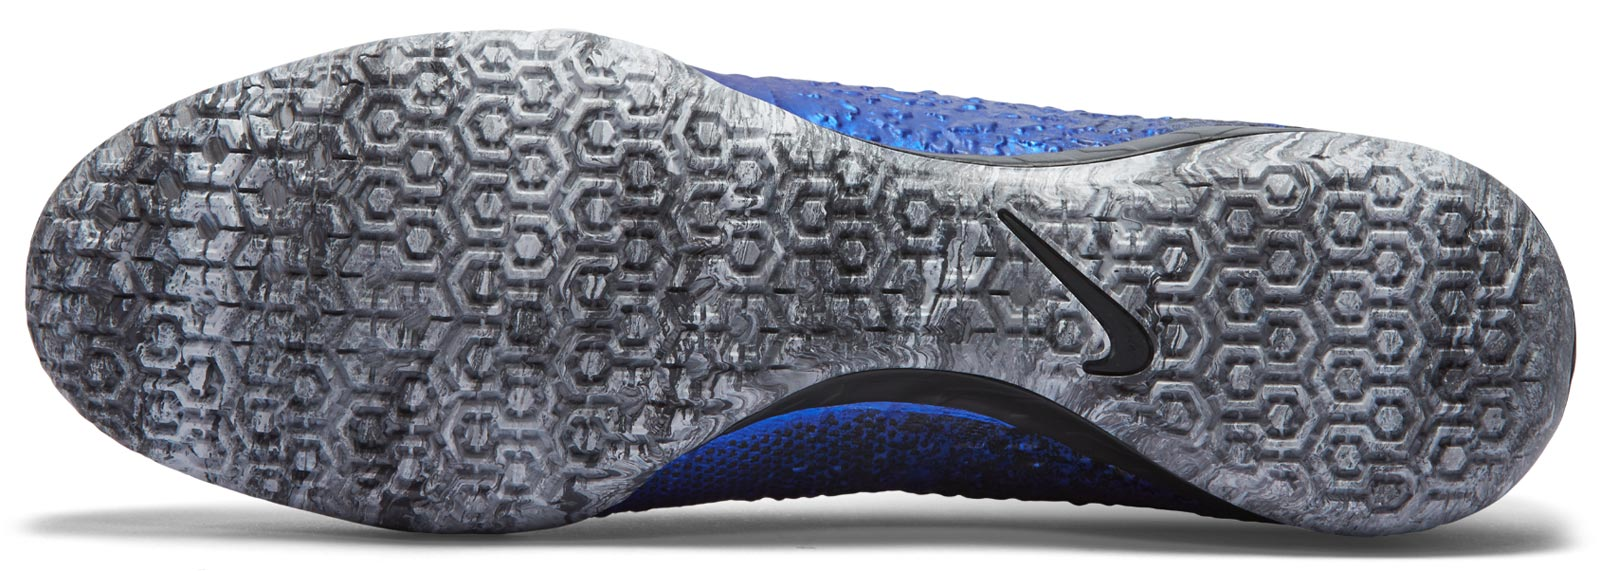 Schuhe Nike Indoor Fußball Mercurial Silber cr7 WEH29YDI